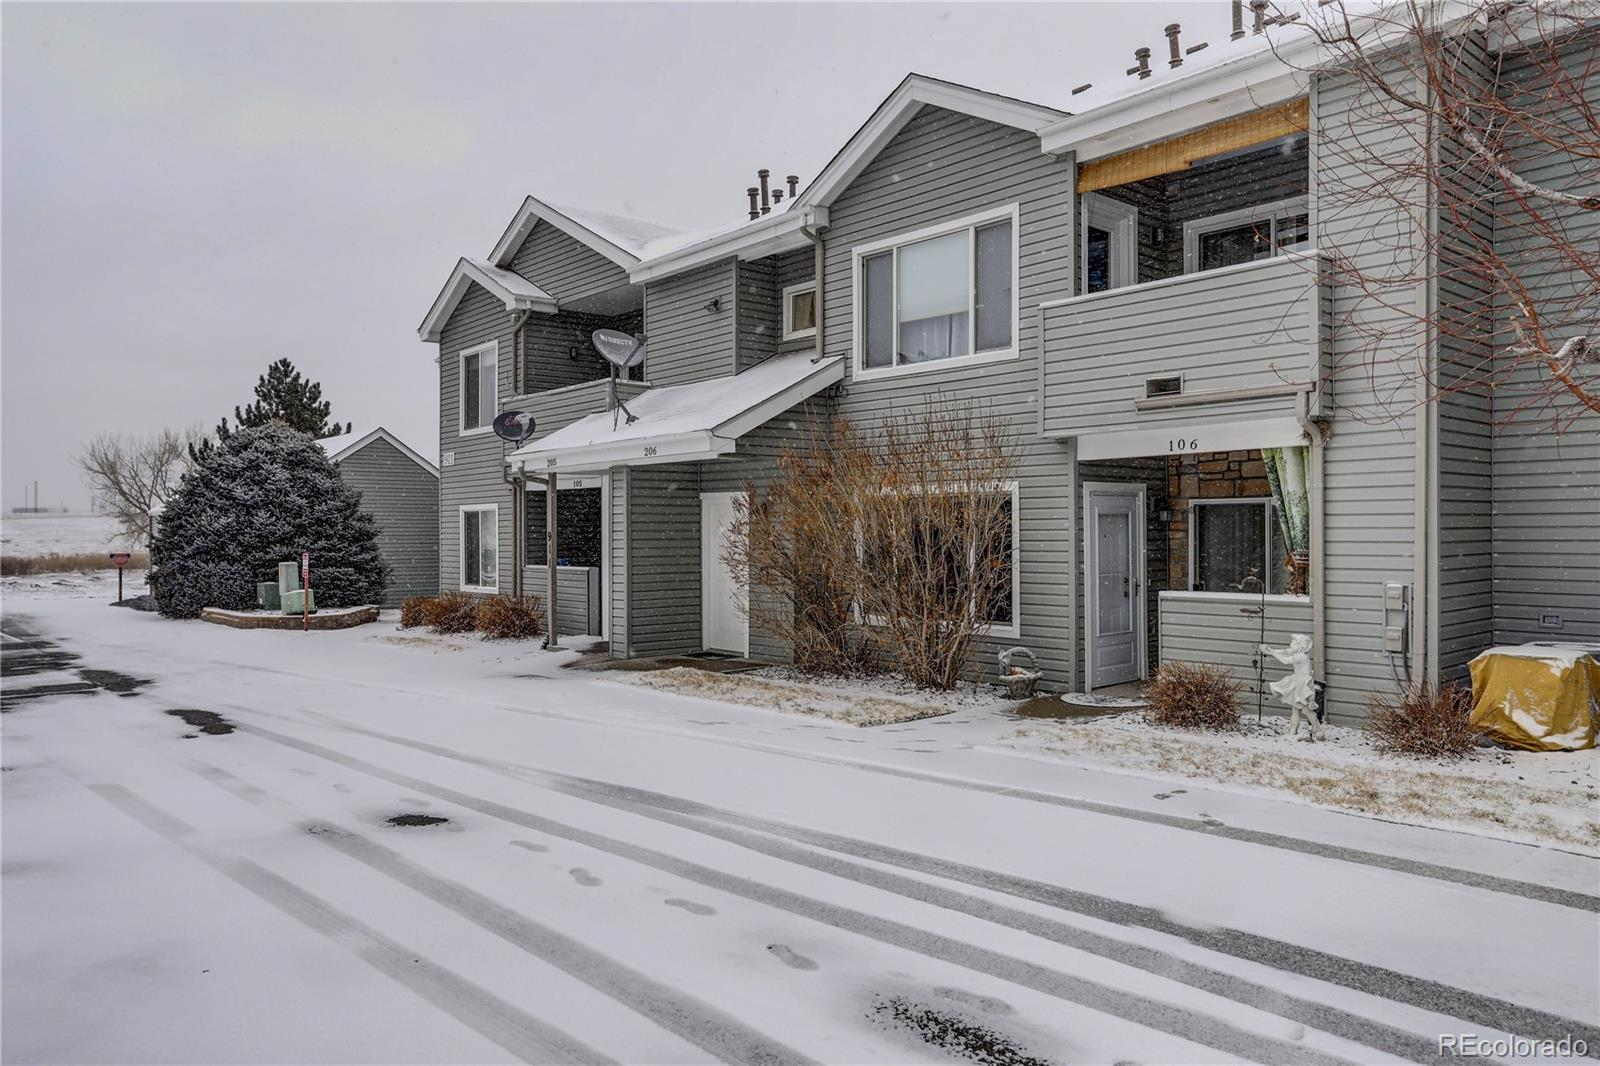 MLS# 6342814 - 1 - 911 S Zeno Way #106, Aurora, CO 80017